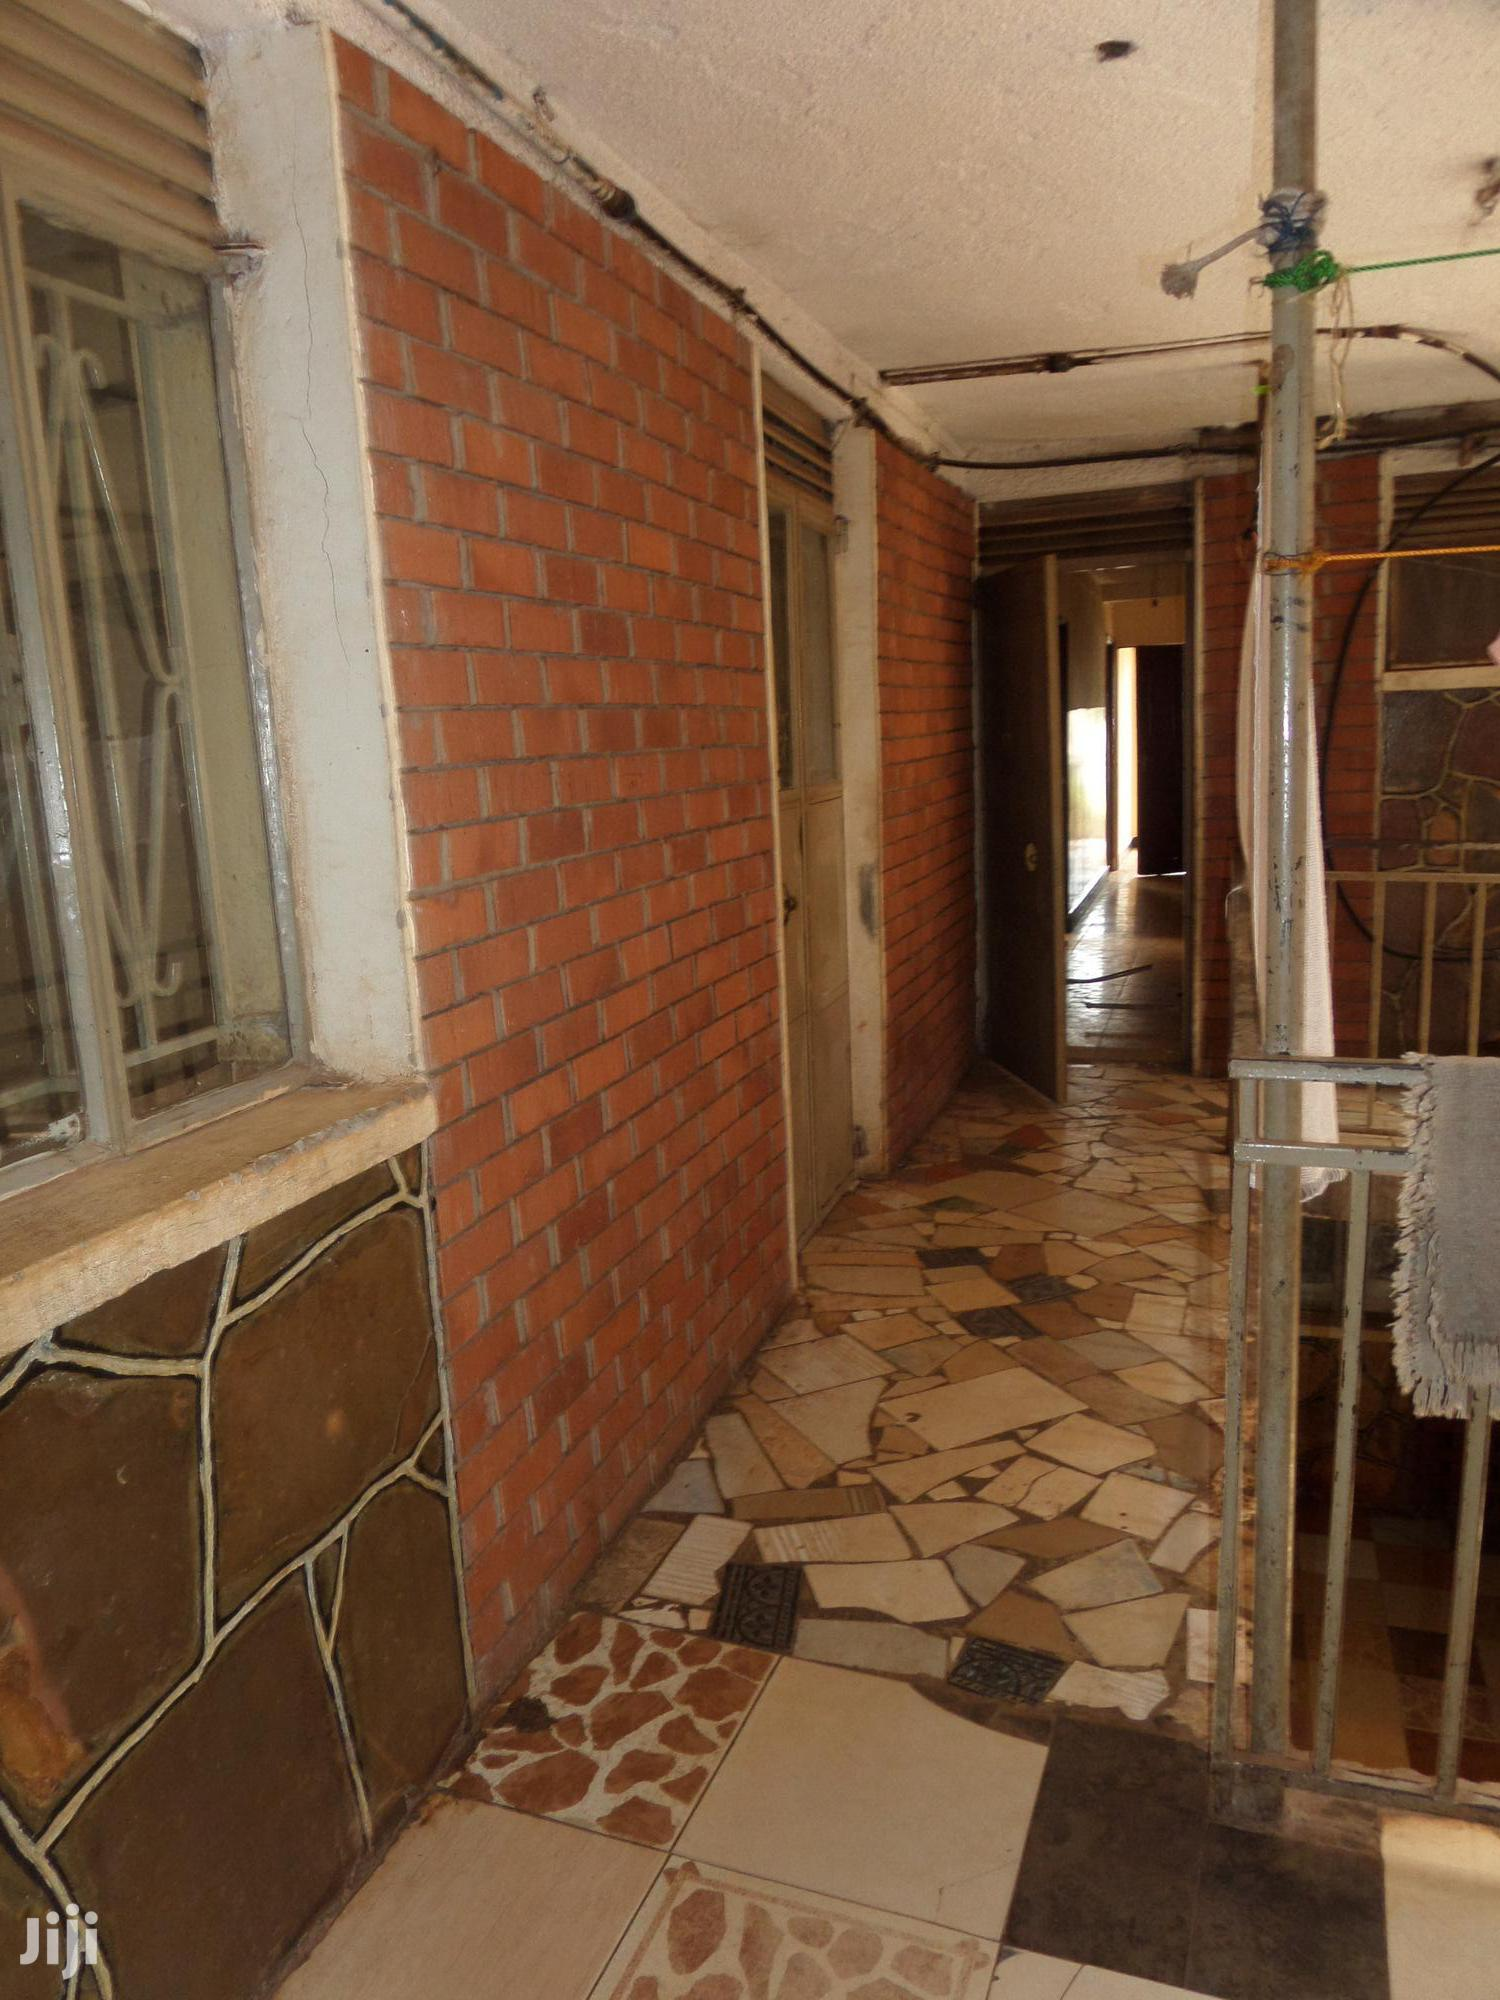 Kawempe One Bedroom House For Rent